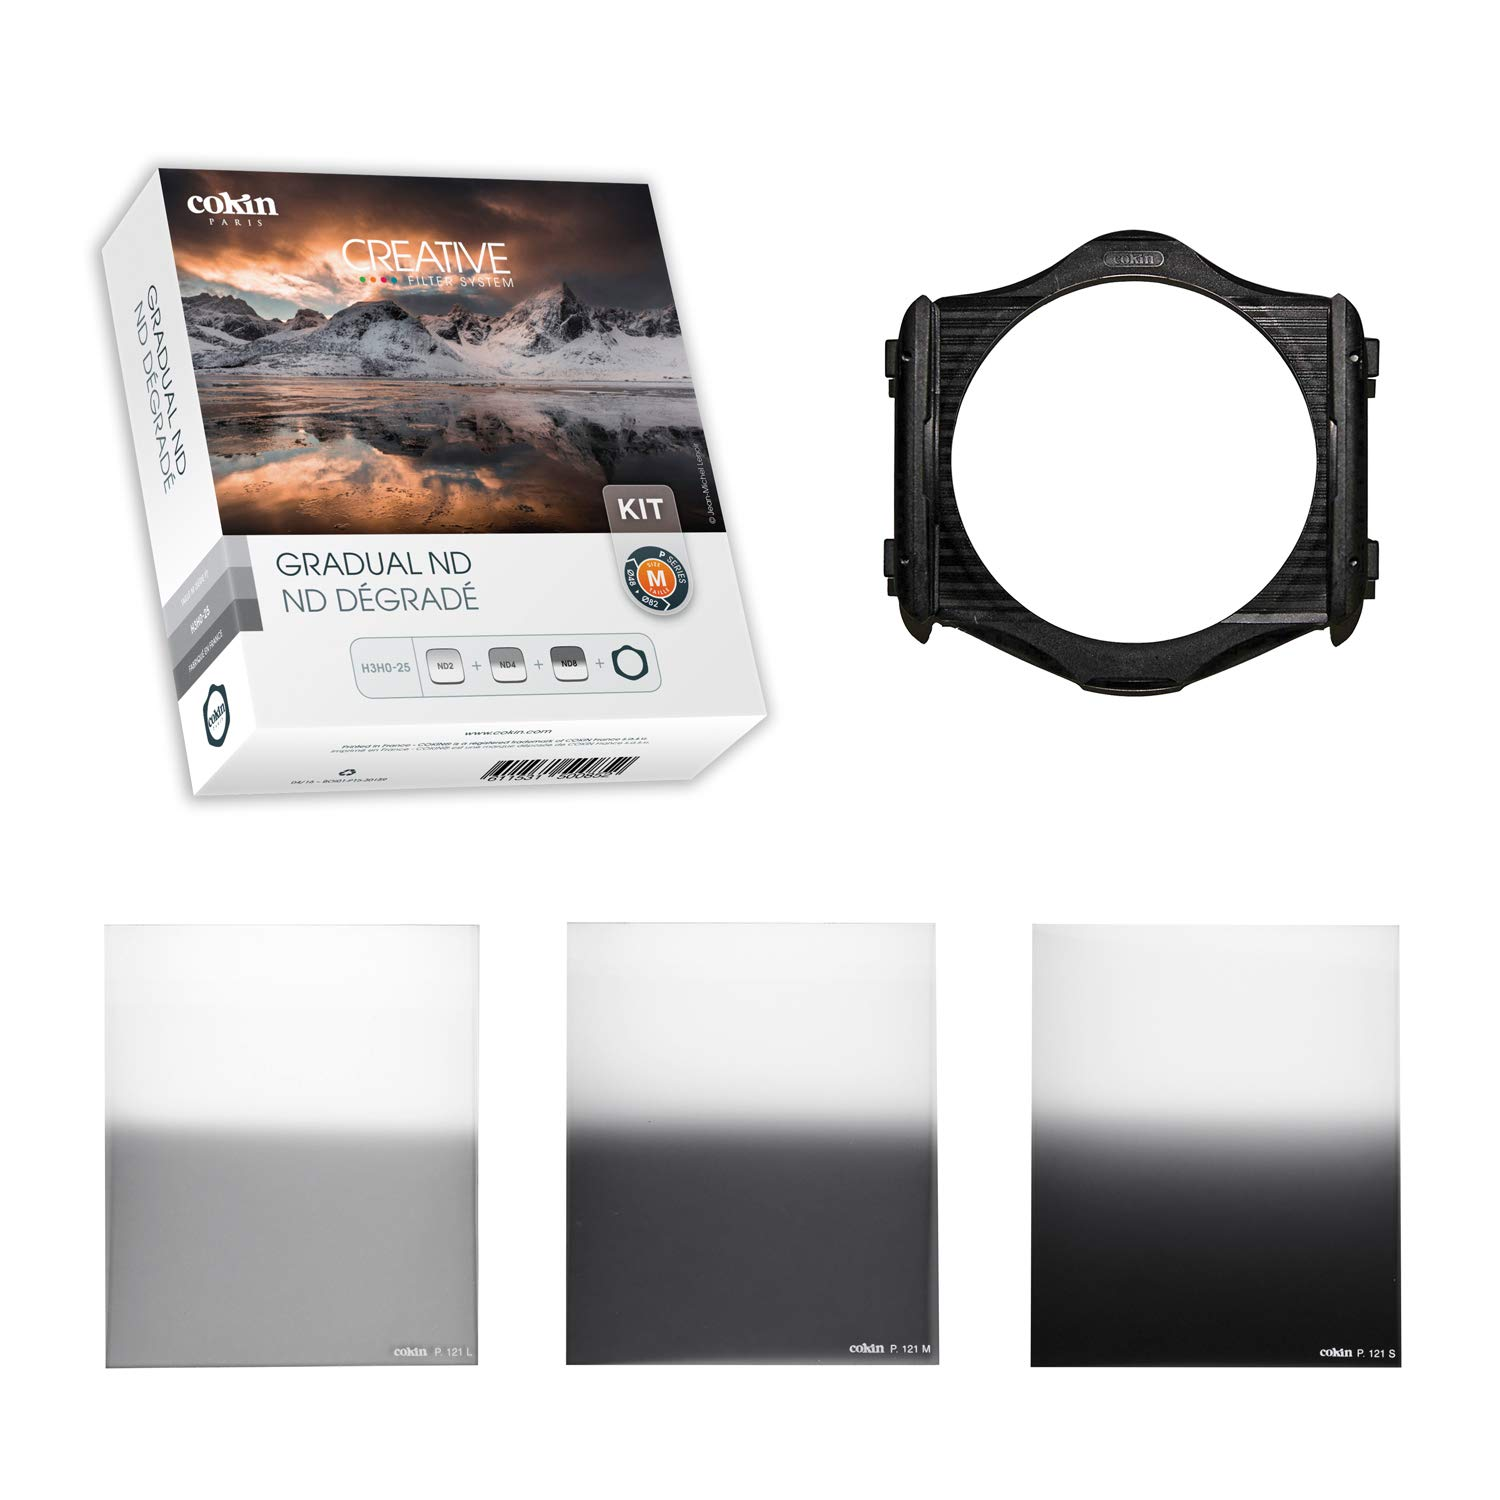 Cokin Gradual ND Creative Kit Plus - Includes M (P) Series Filter Holder, Gnd 1-Stop (121L), Gnd 2-Stop (121M), Gnd 3-Stop Soft (121S)